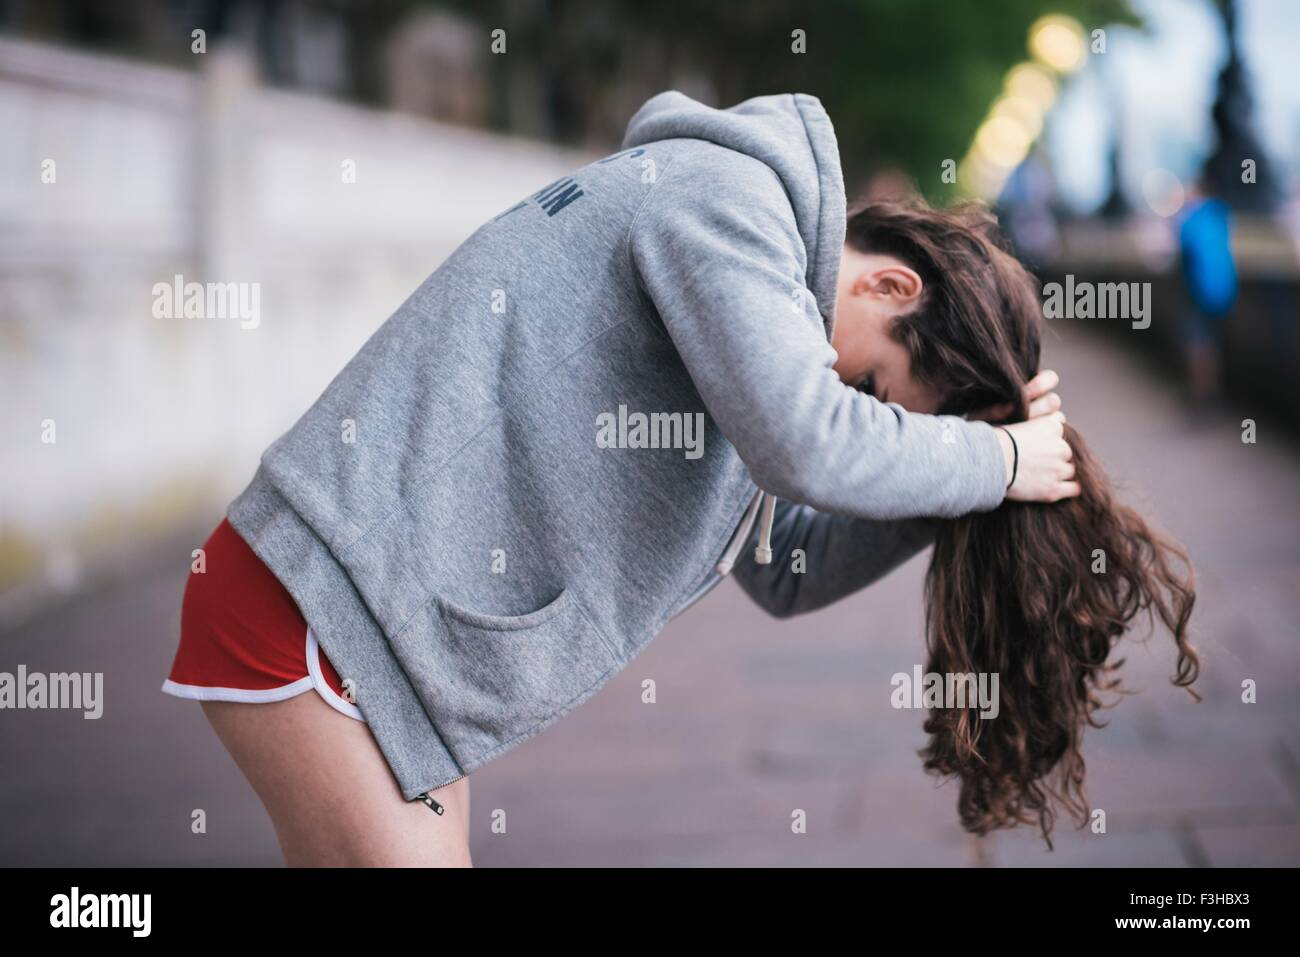 Young female runner tying up long hair on riverside - Stock Image